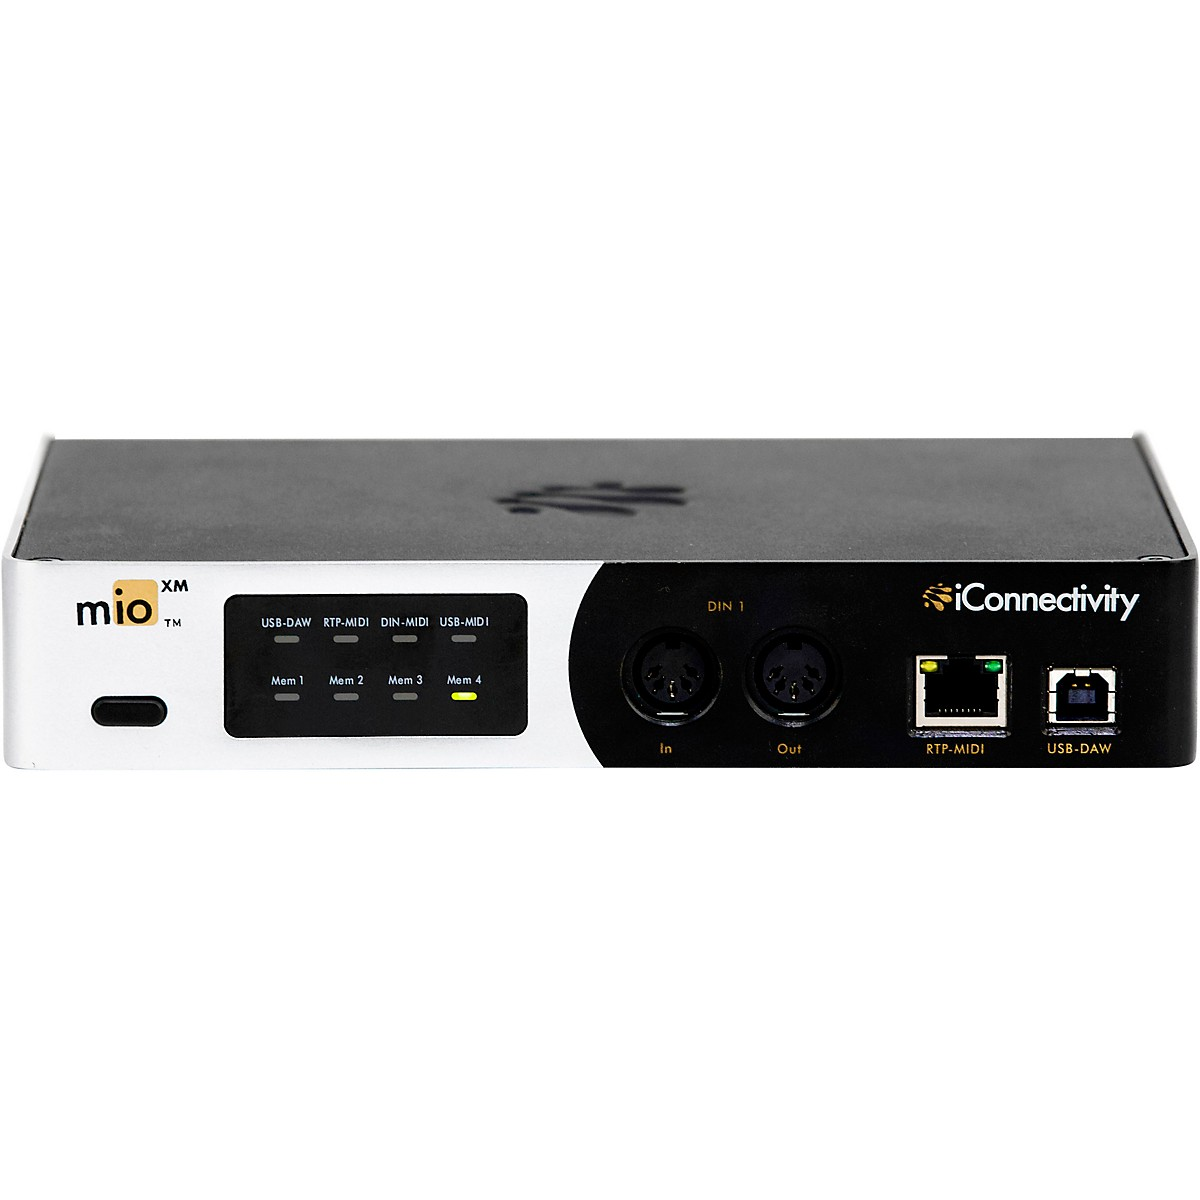 iConnectivity mioXM 4x4 MIDI Interface